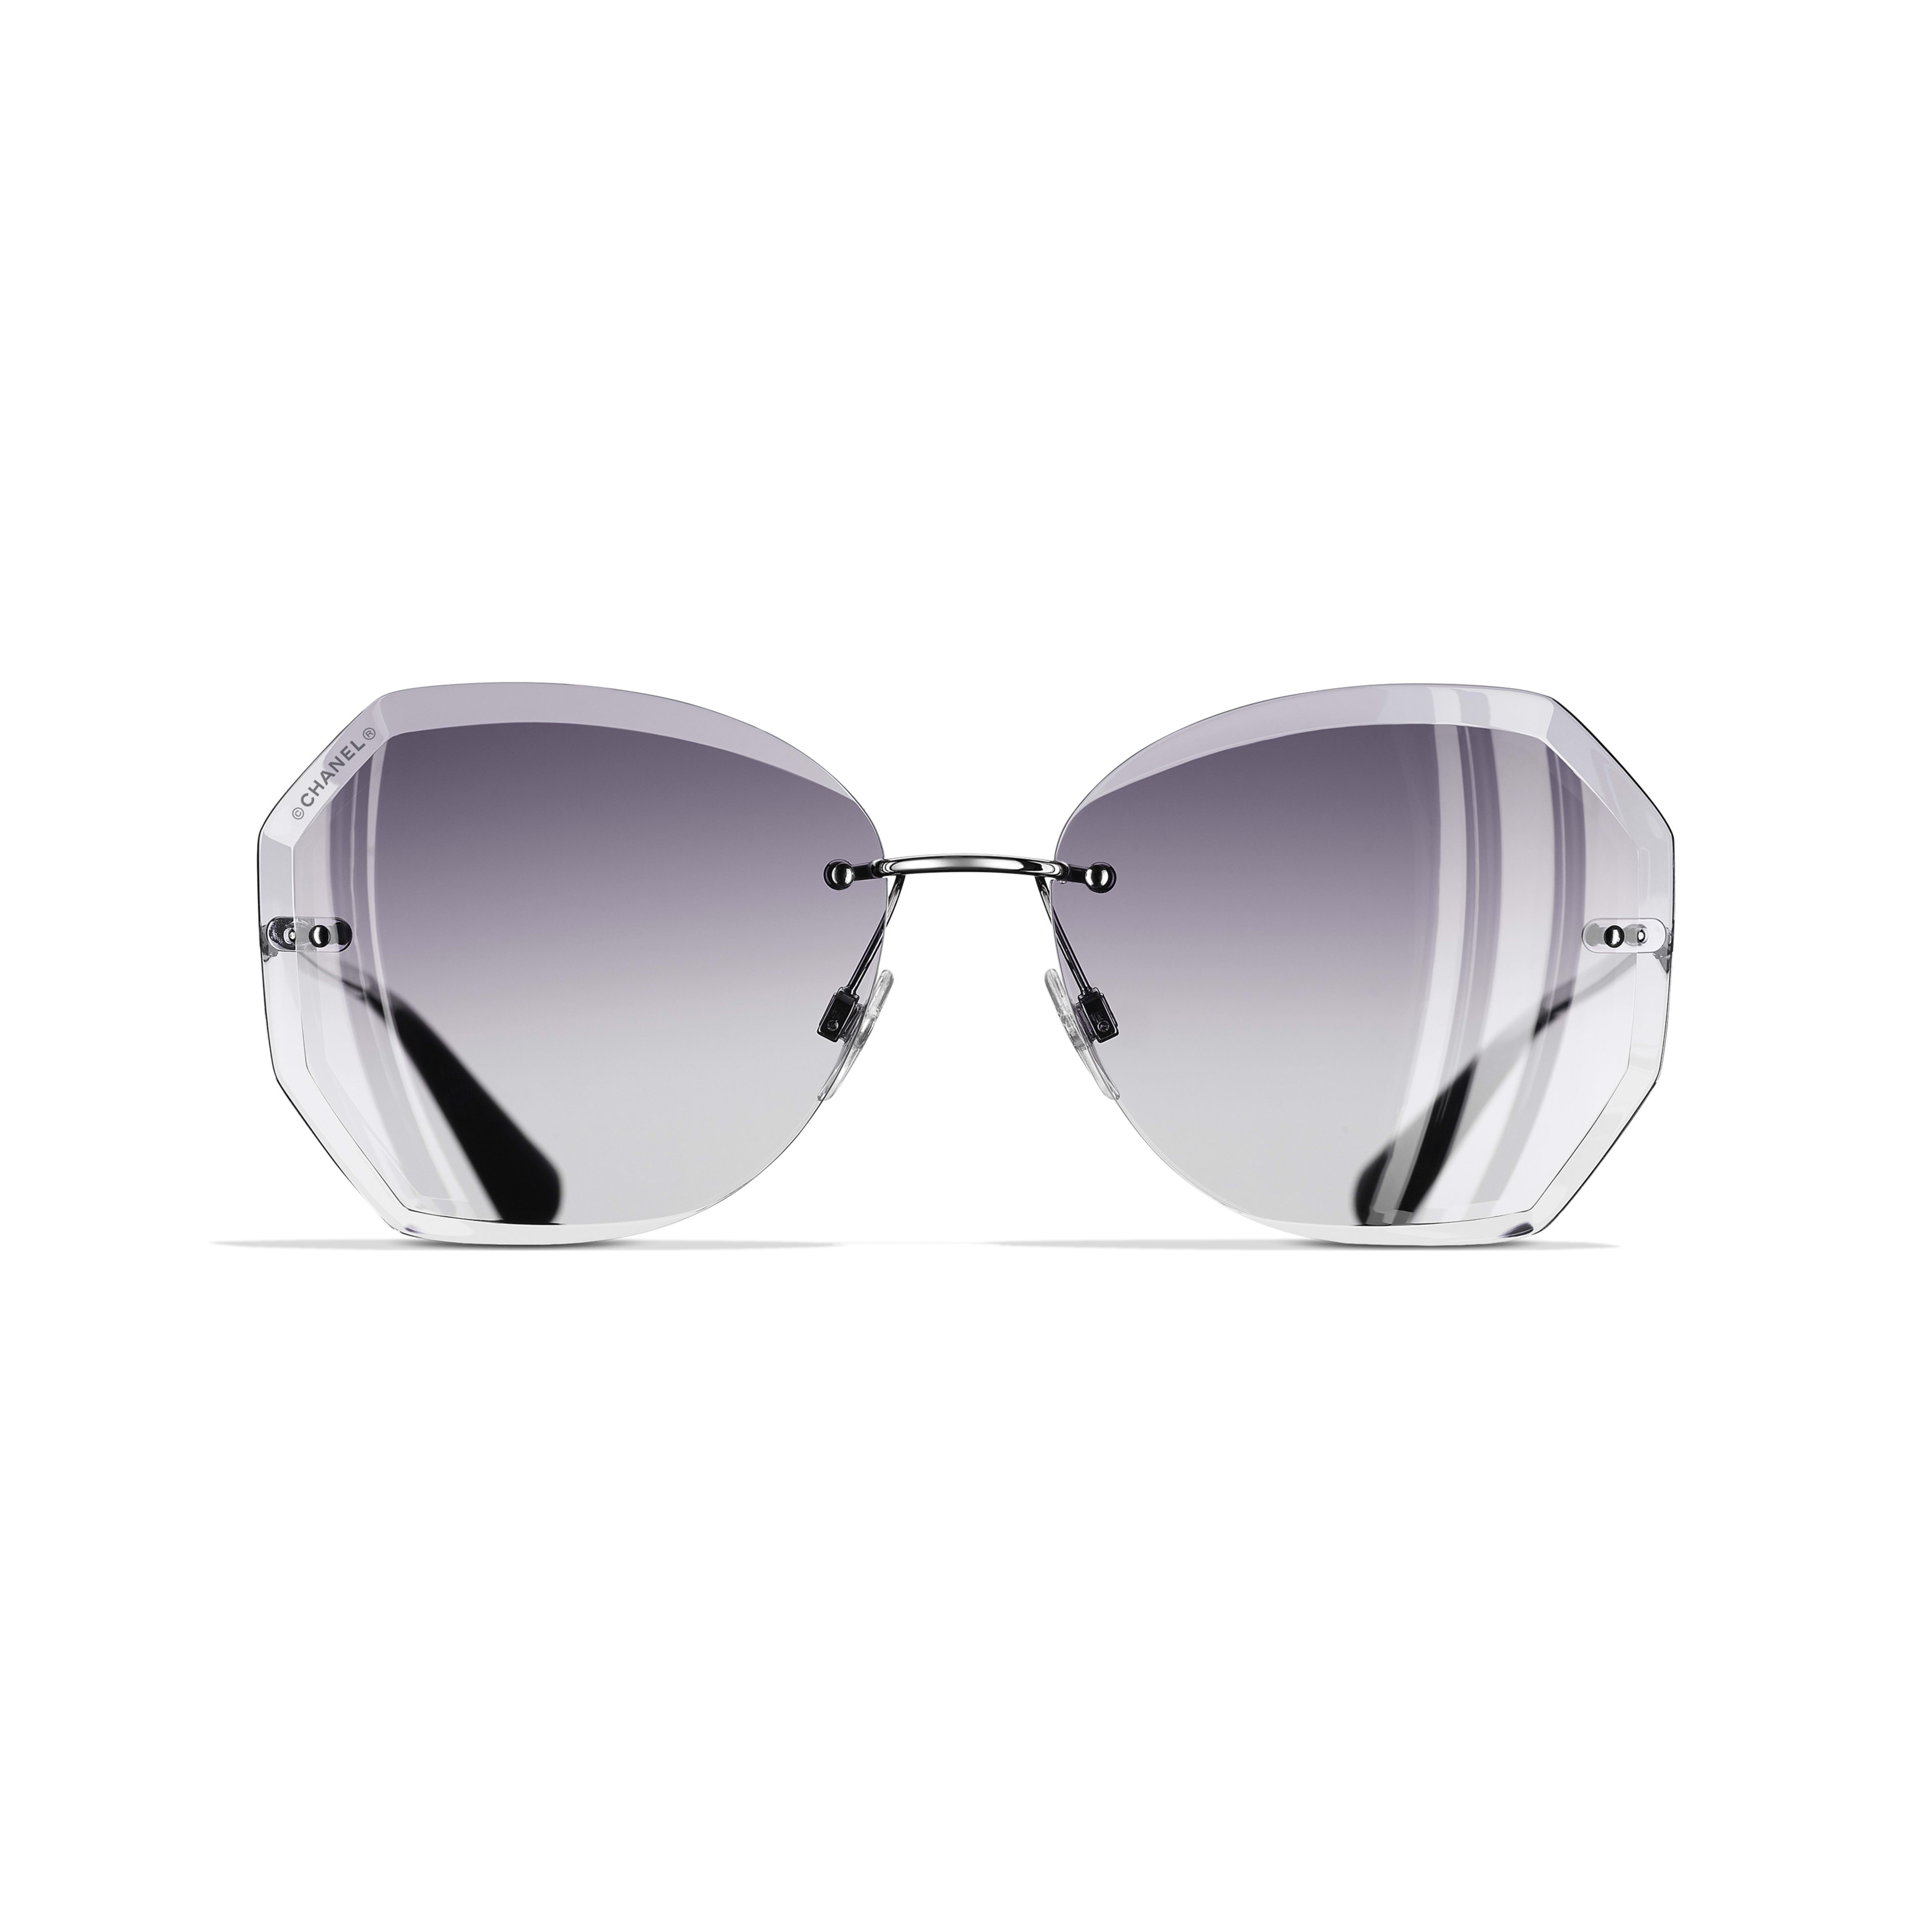 Round Sunglasses - Silver & Grey - Metal - Alternative view - see full sized version